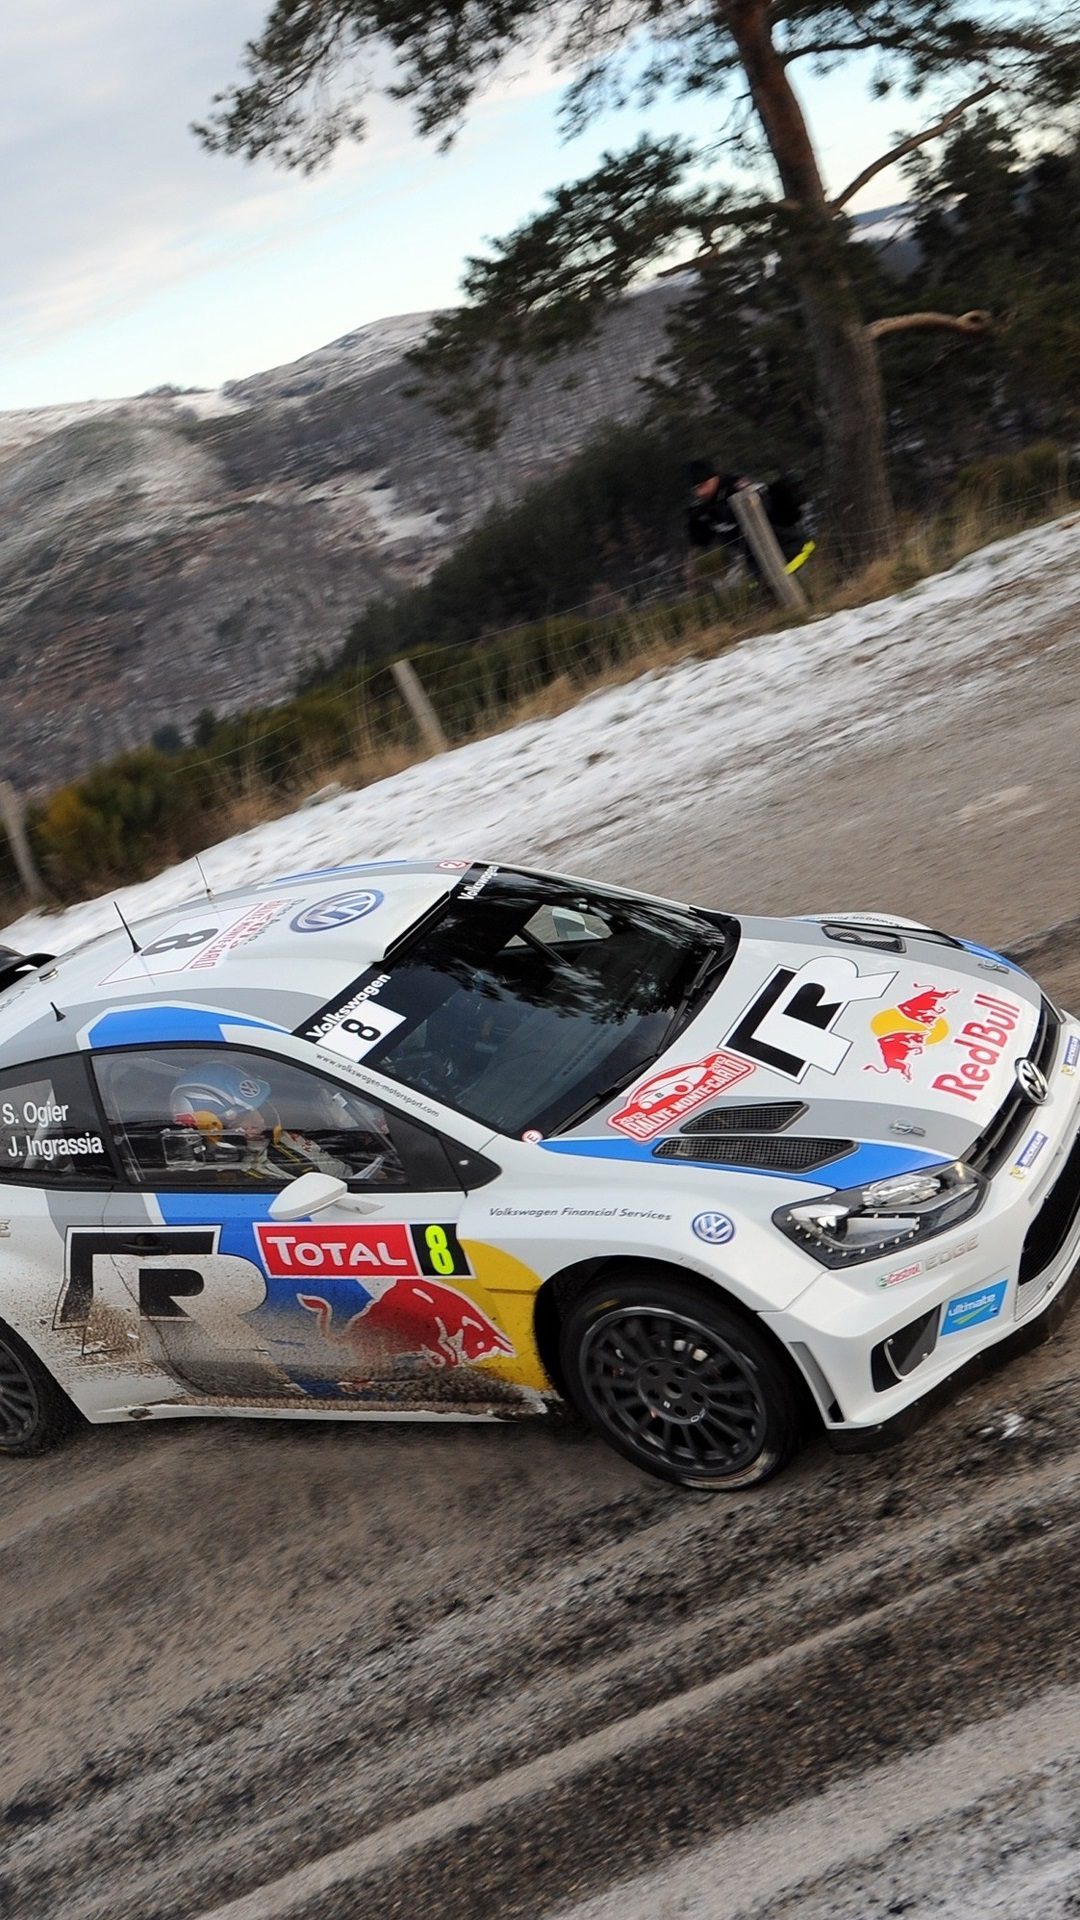 Rally Volkswagen Polo Car Winter 1080x1920 Iphone 8 7 6 6s Plus